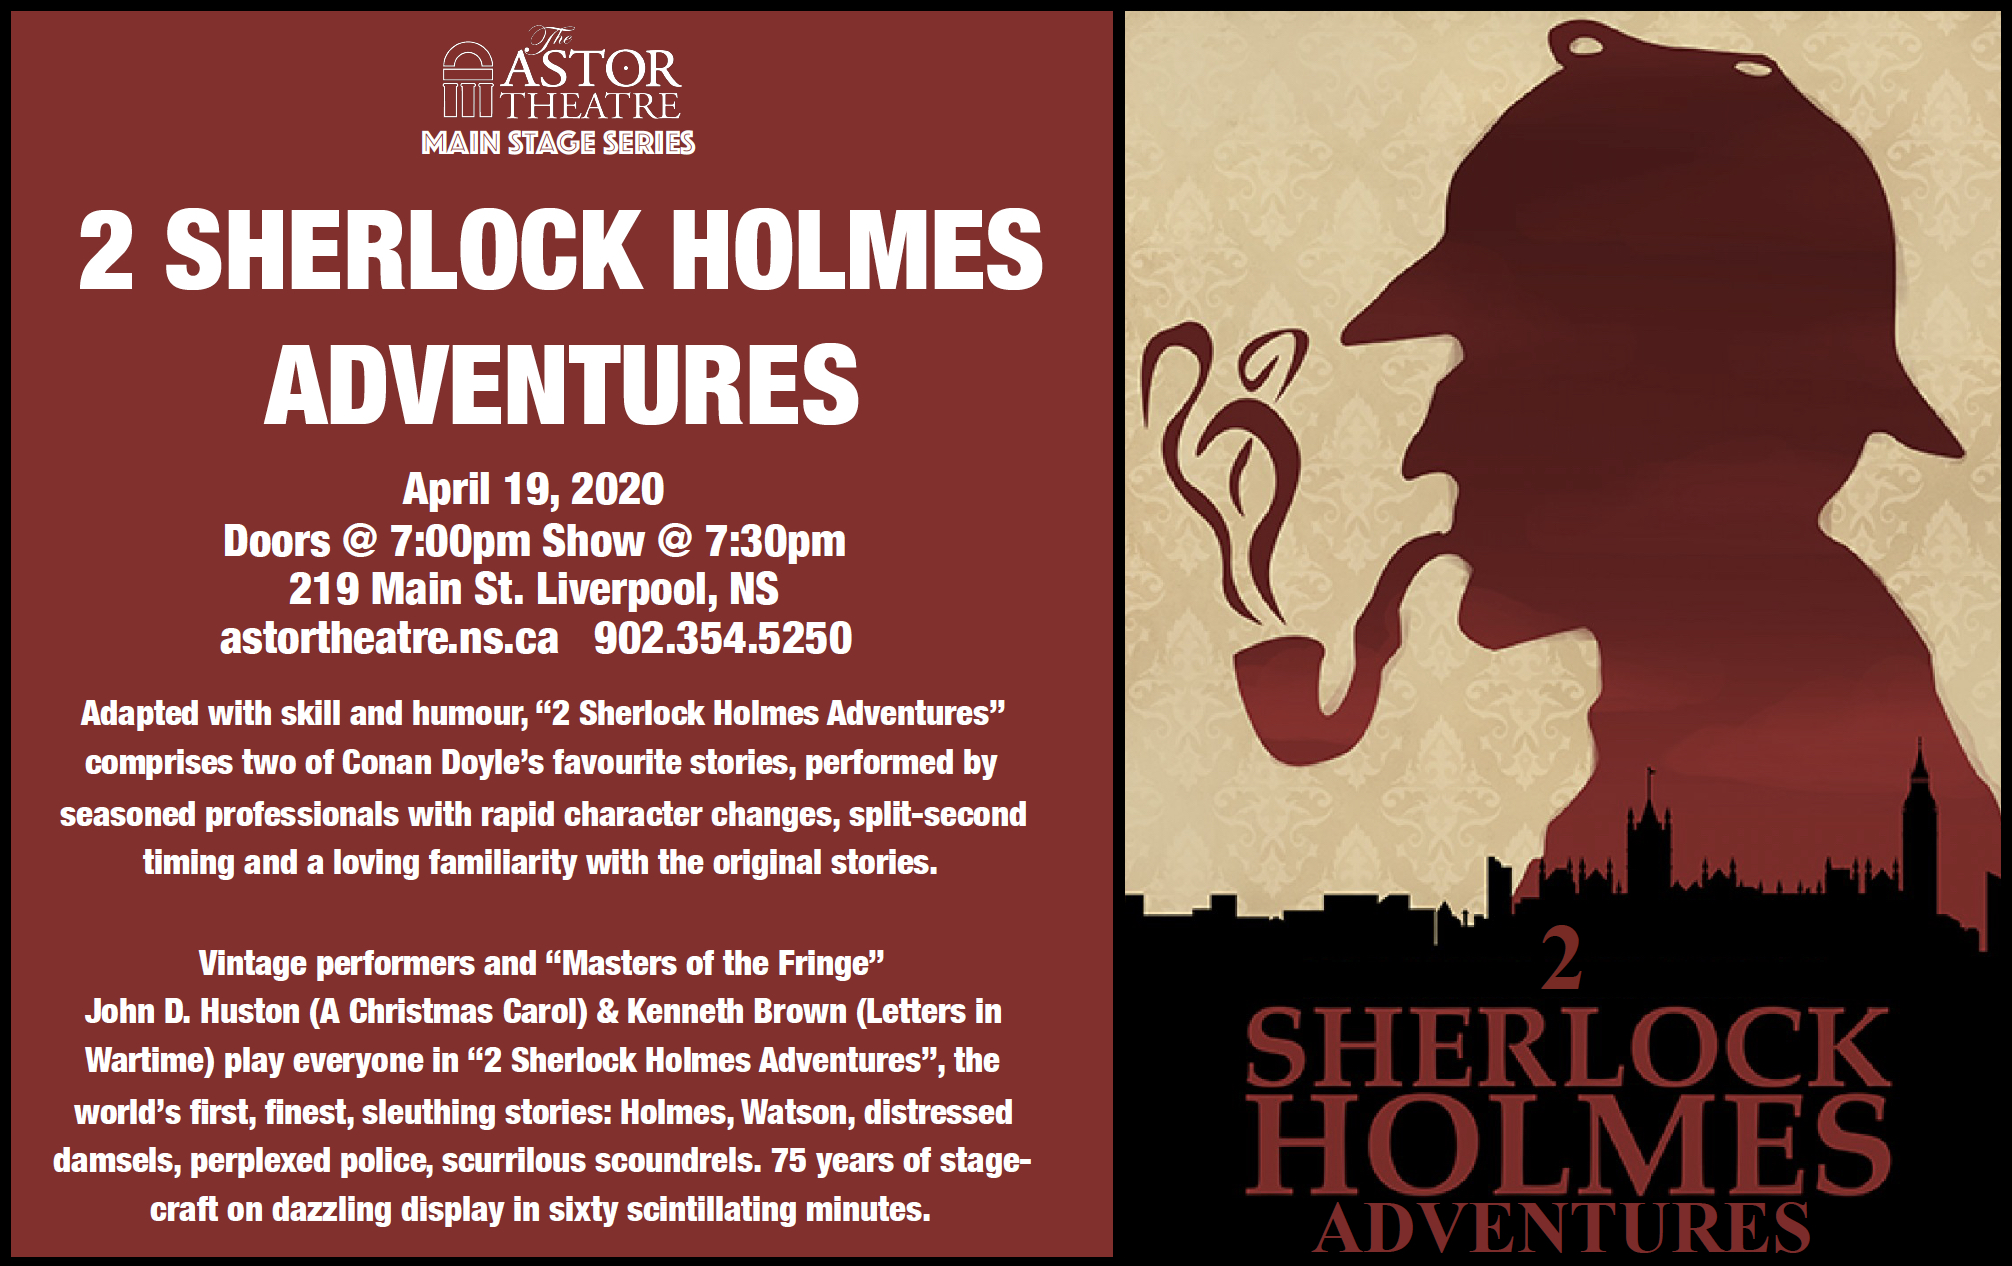 2 Sherlock Holmes Adventures ( Main Stage Series) @ Astor Theatre